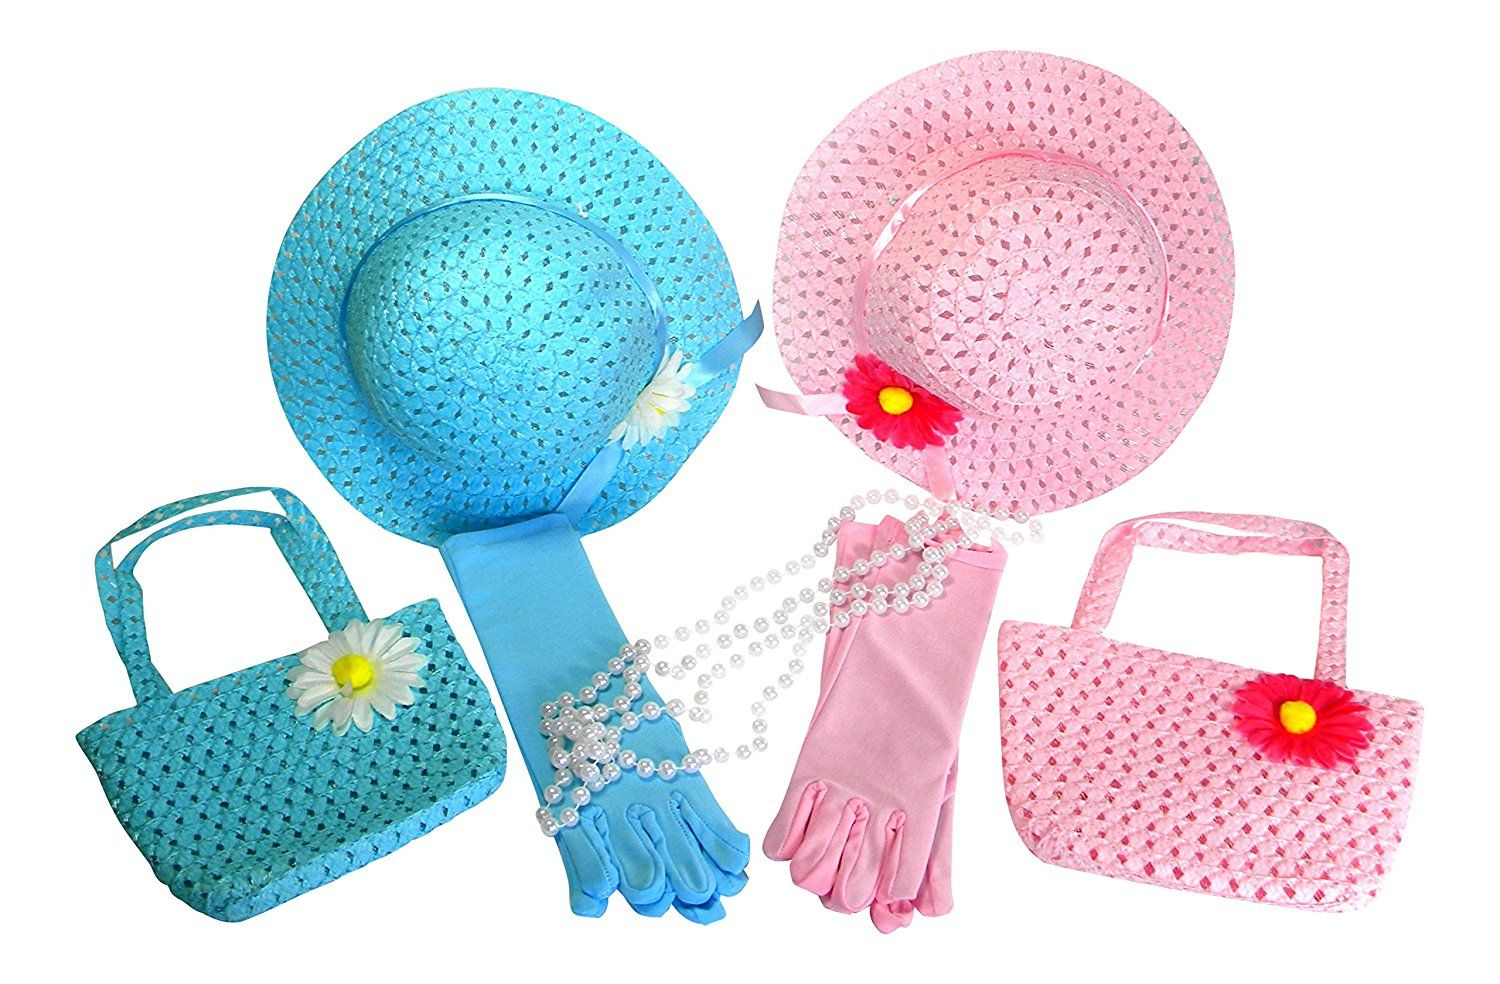 Amazon.com: Girls Tea Party Dress Up Play Set For 2 with Sun Hats ...